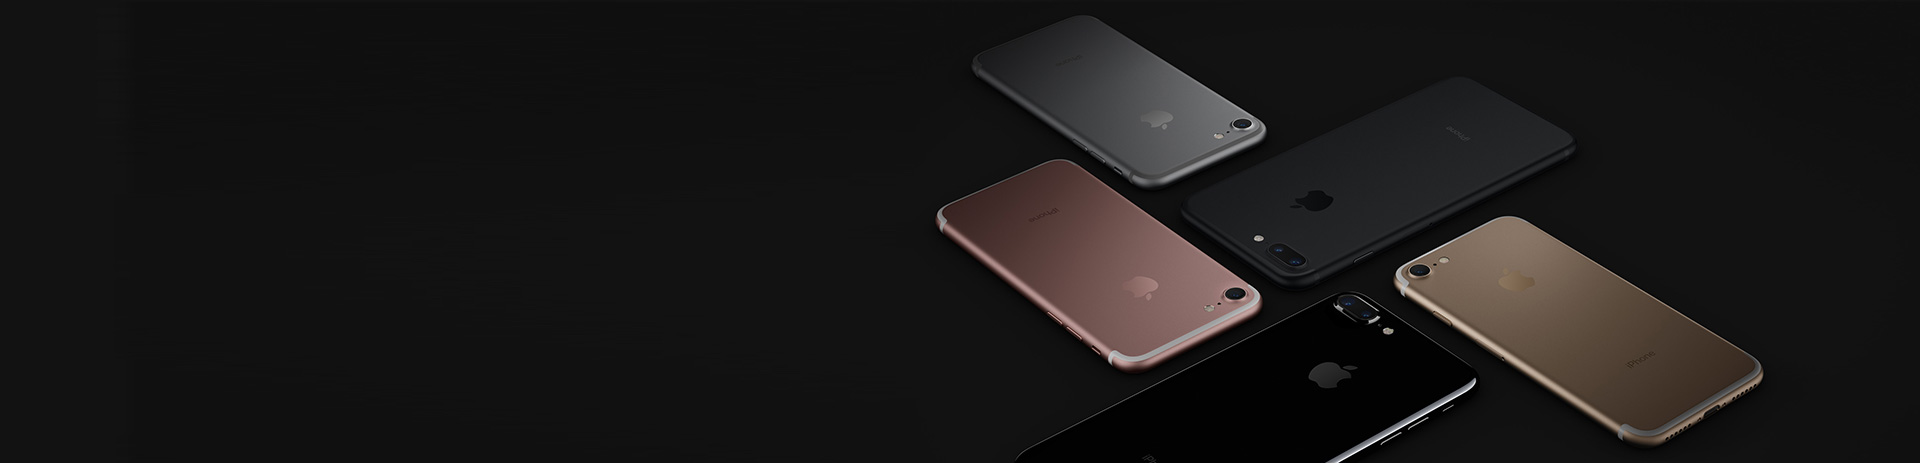 iPhone 7 - das Next Handy des Monats April